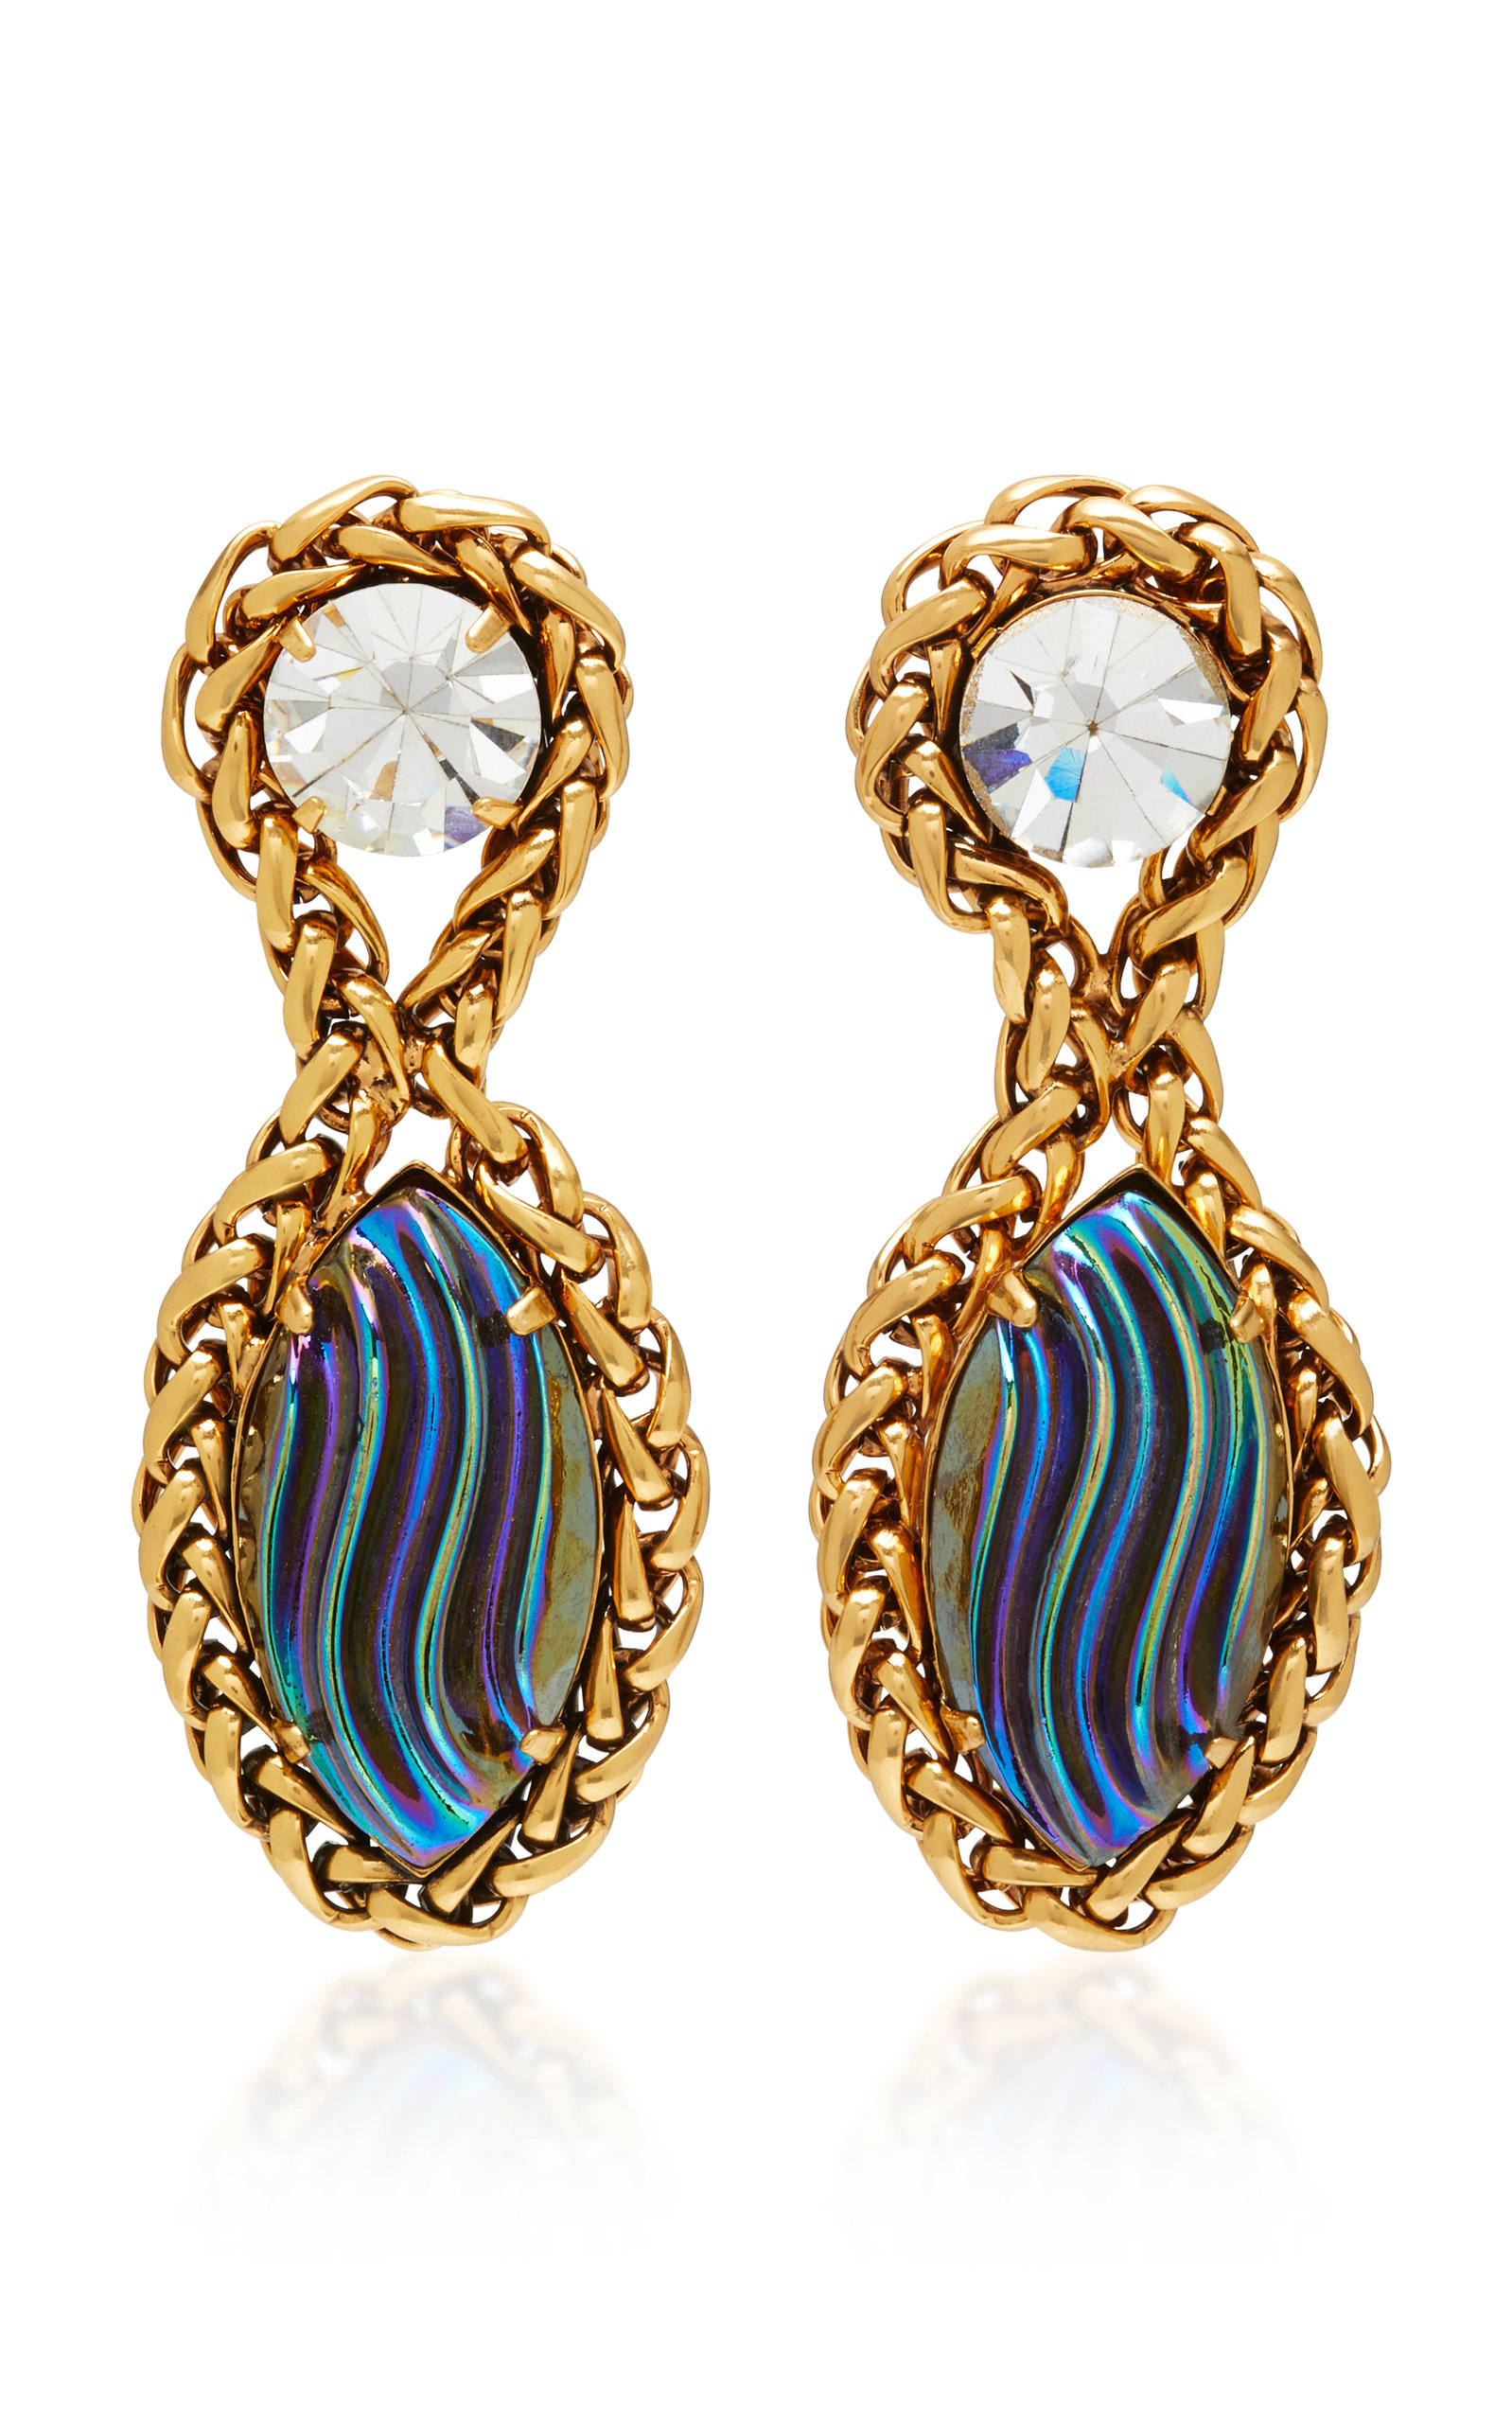 NICOLE ROMANO PALMER 18K GOLD PLATED CHAIN AND GLASS EARRINGS